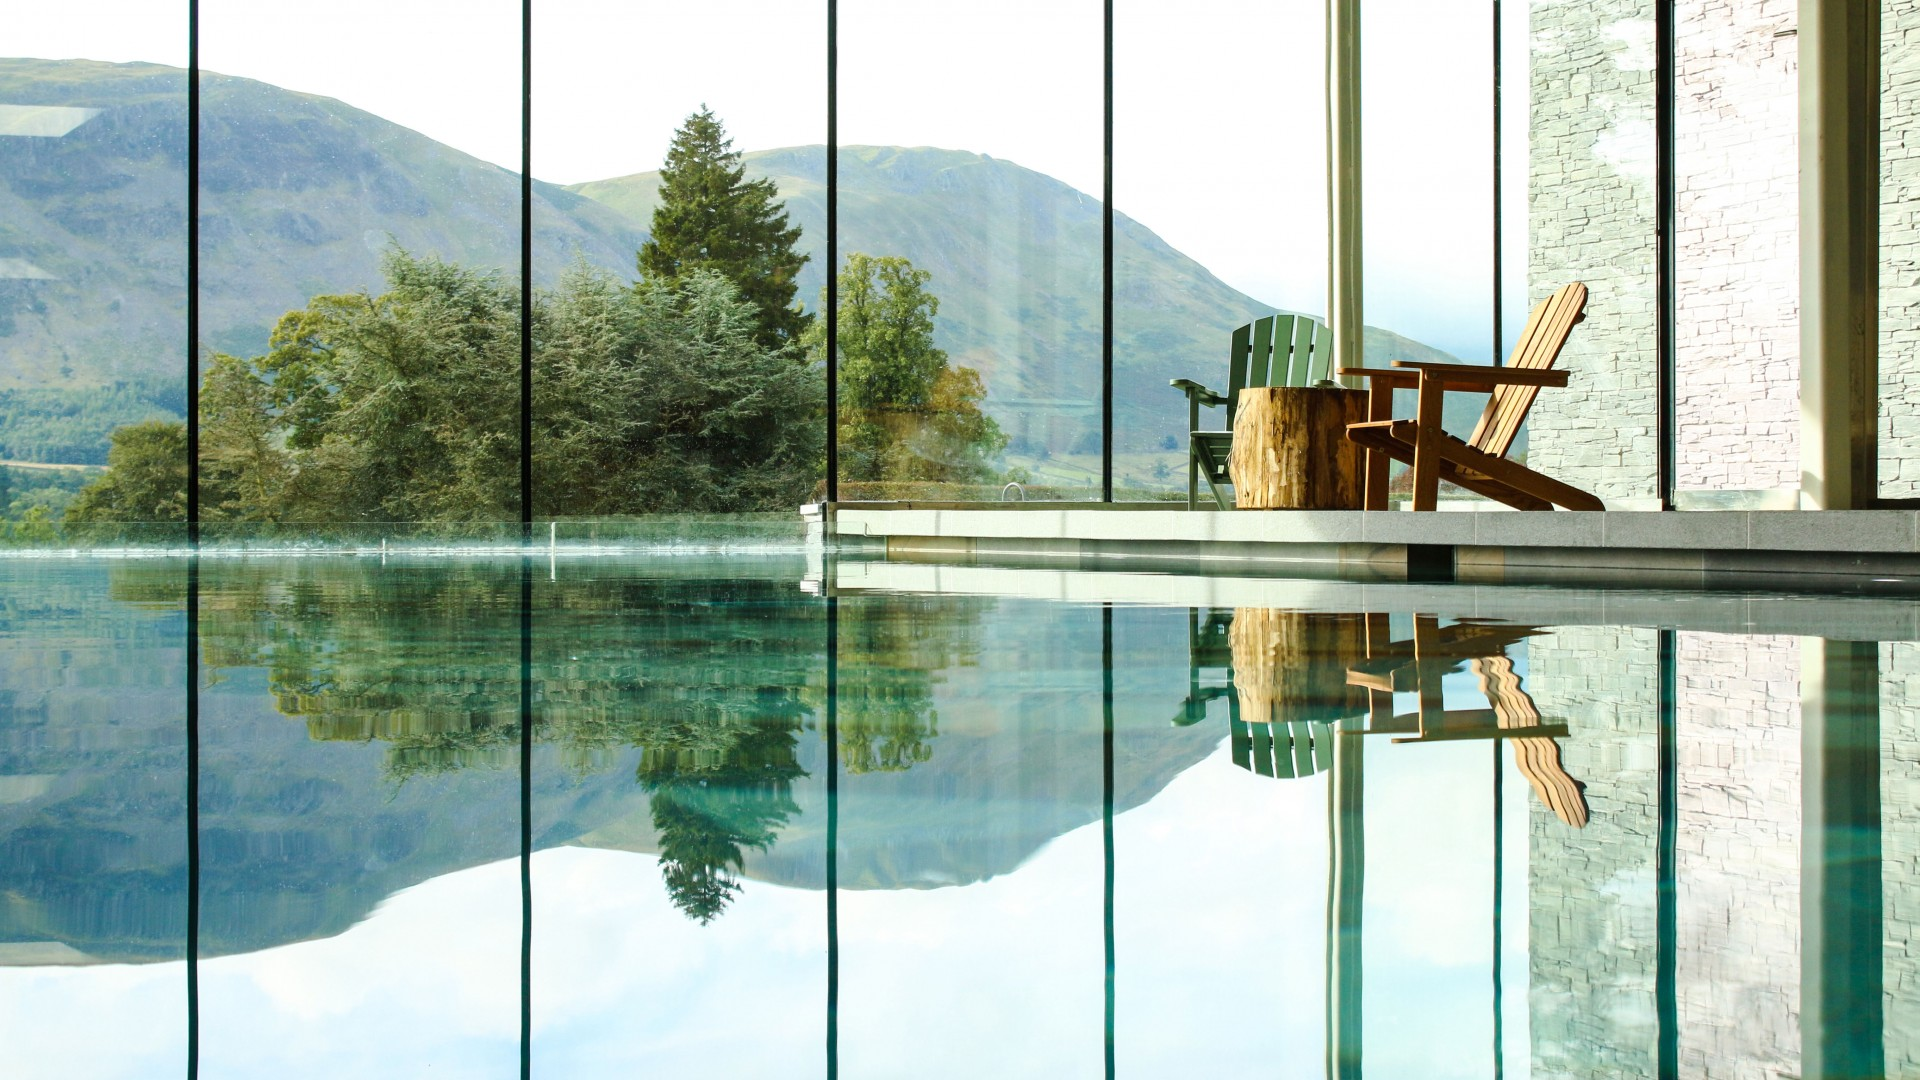 Swimming pool views at Another Place – The Lake, Lake District